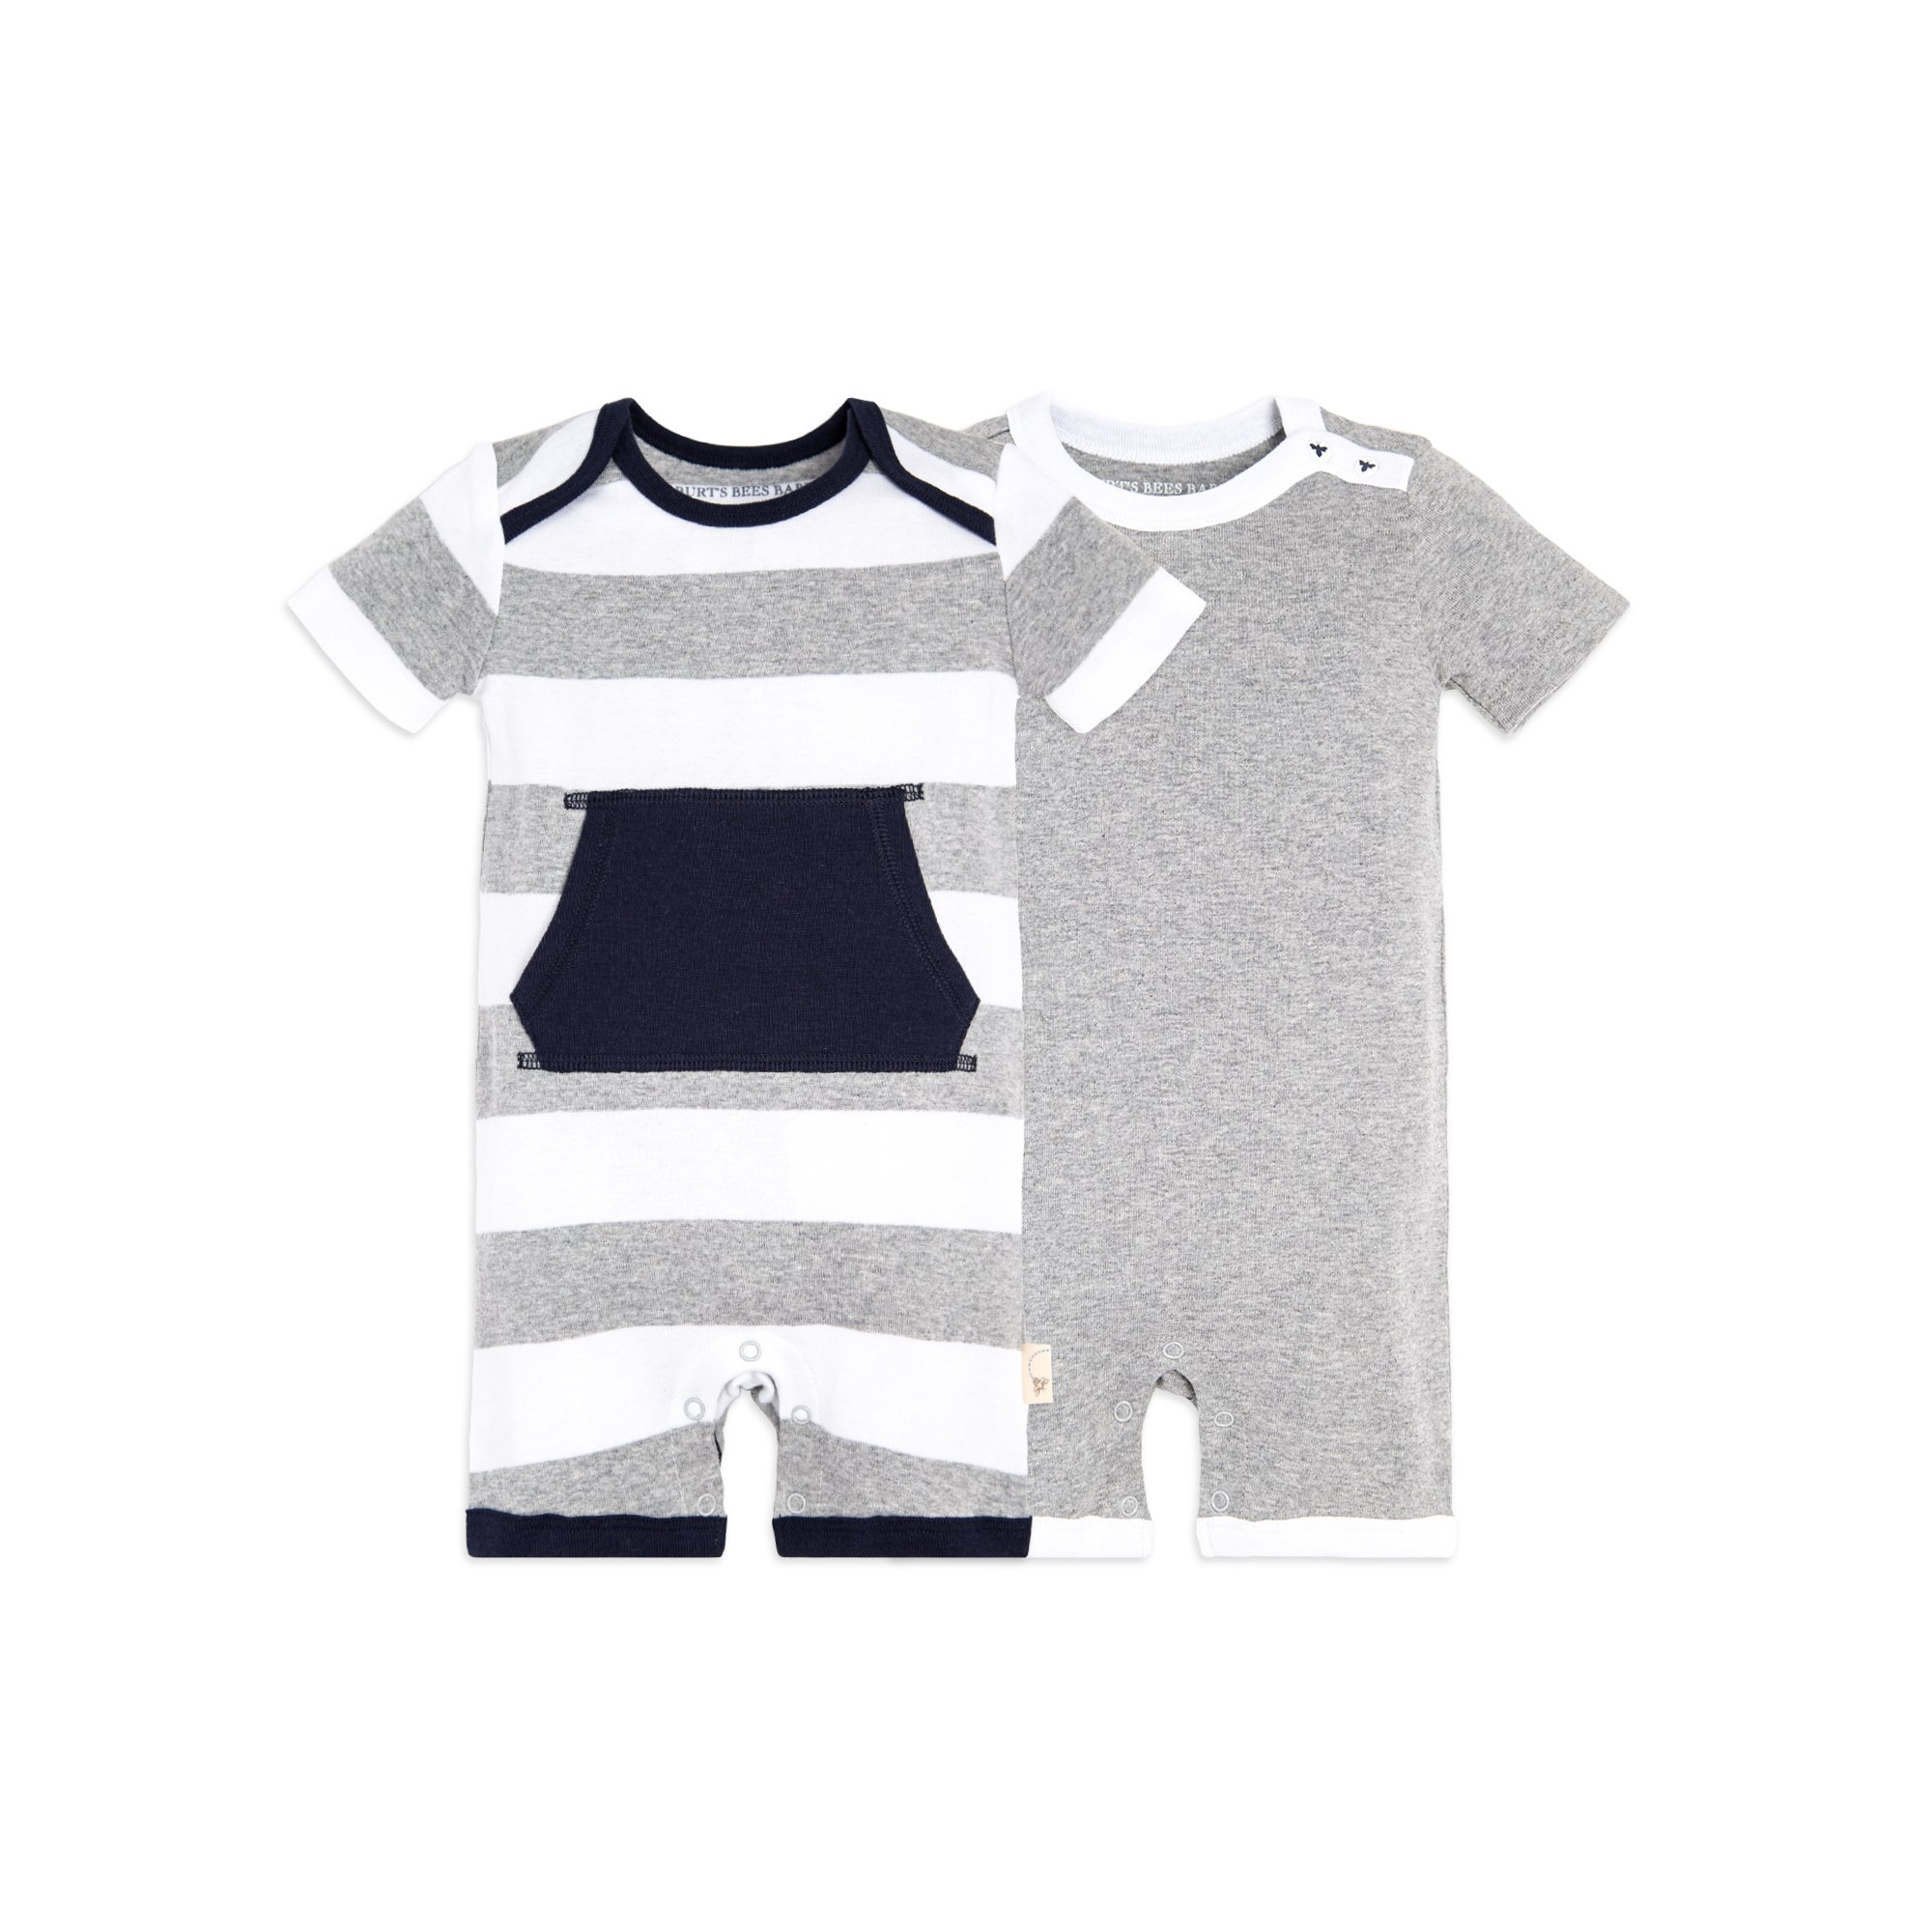 Burts Bees Baby - Baby Boys Short Sleeve Rompers 2-Pack, 100%